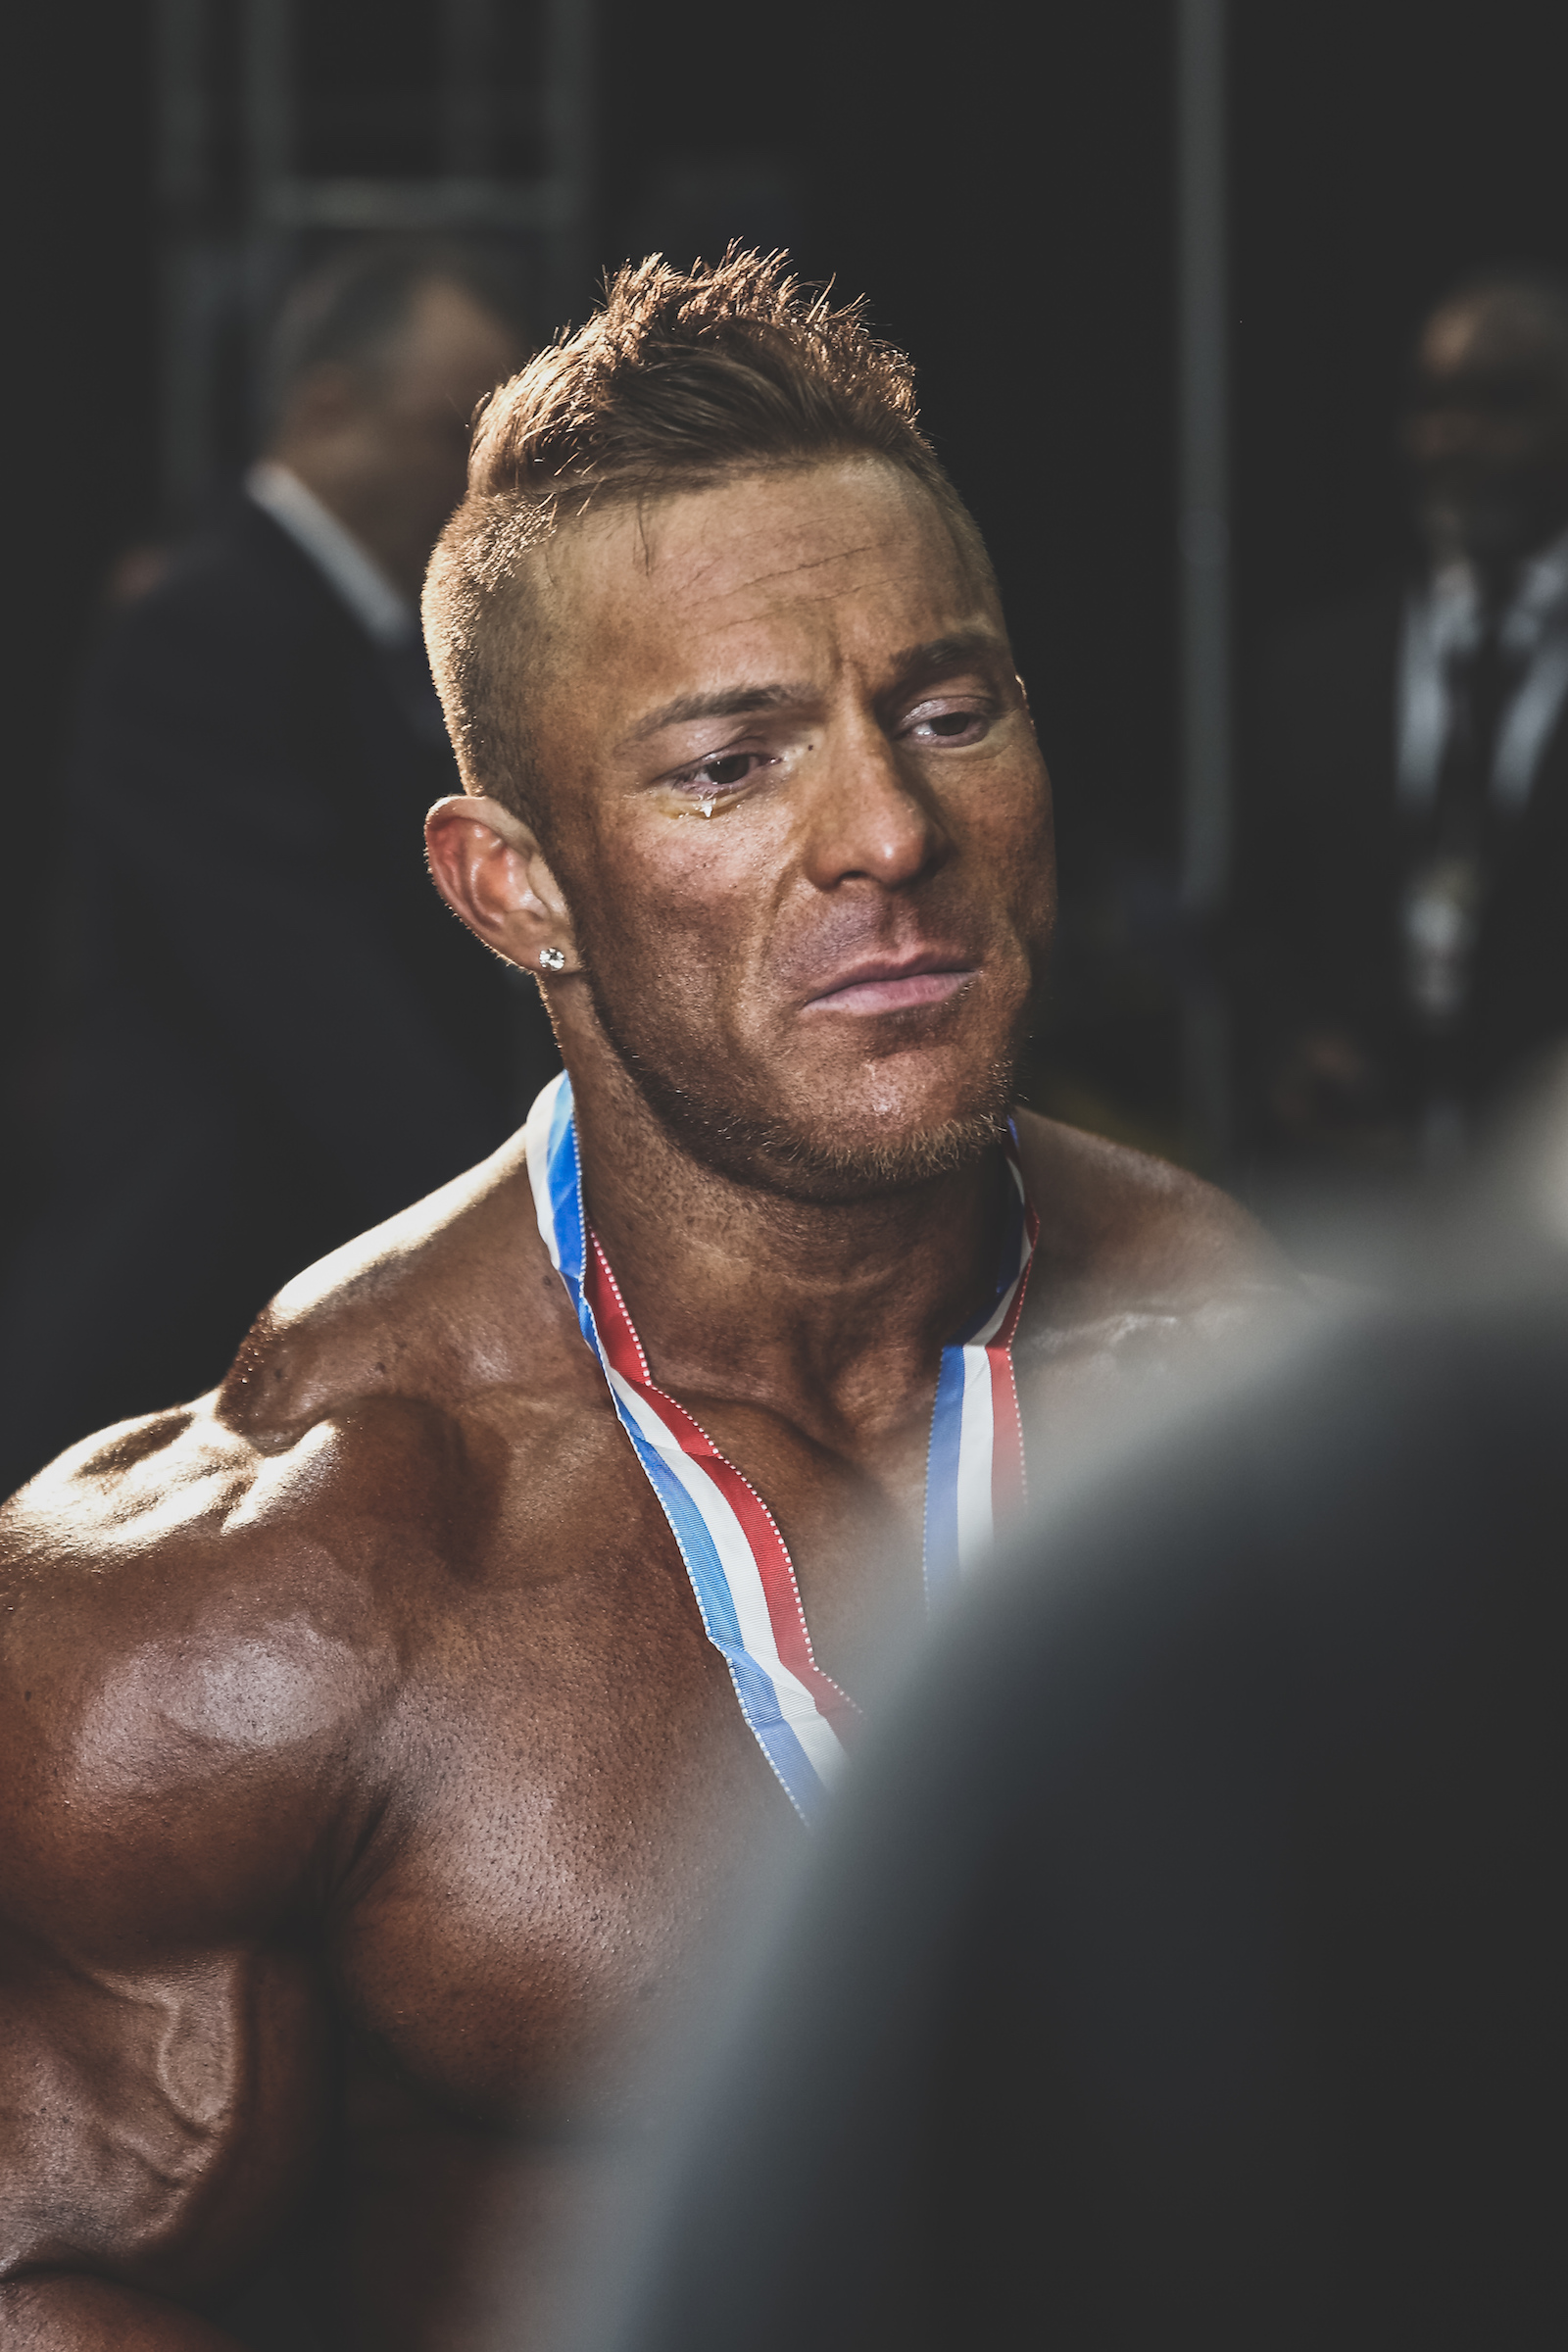 An emotional Flex Lewis after winning his seventh straight Mr. Olympia 212 title. Las Vegas, NV.